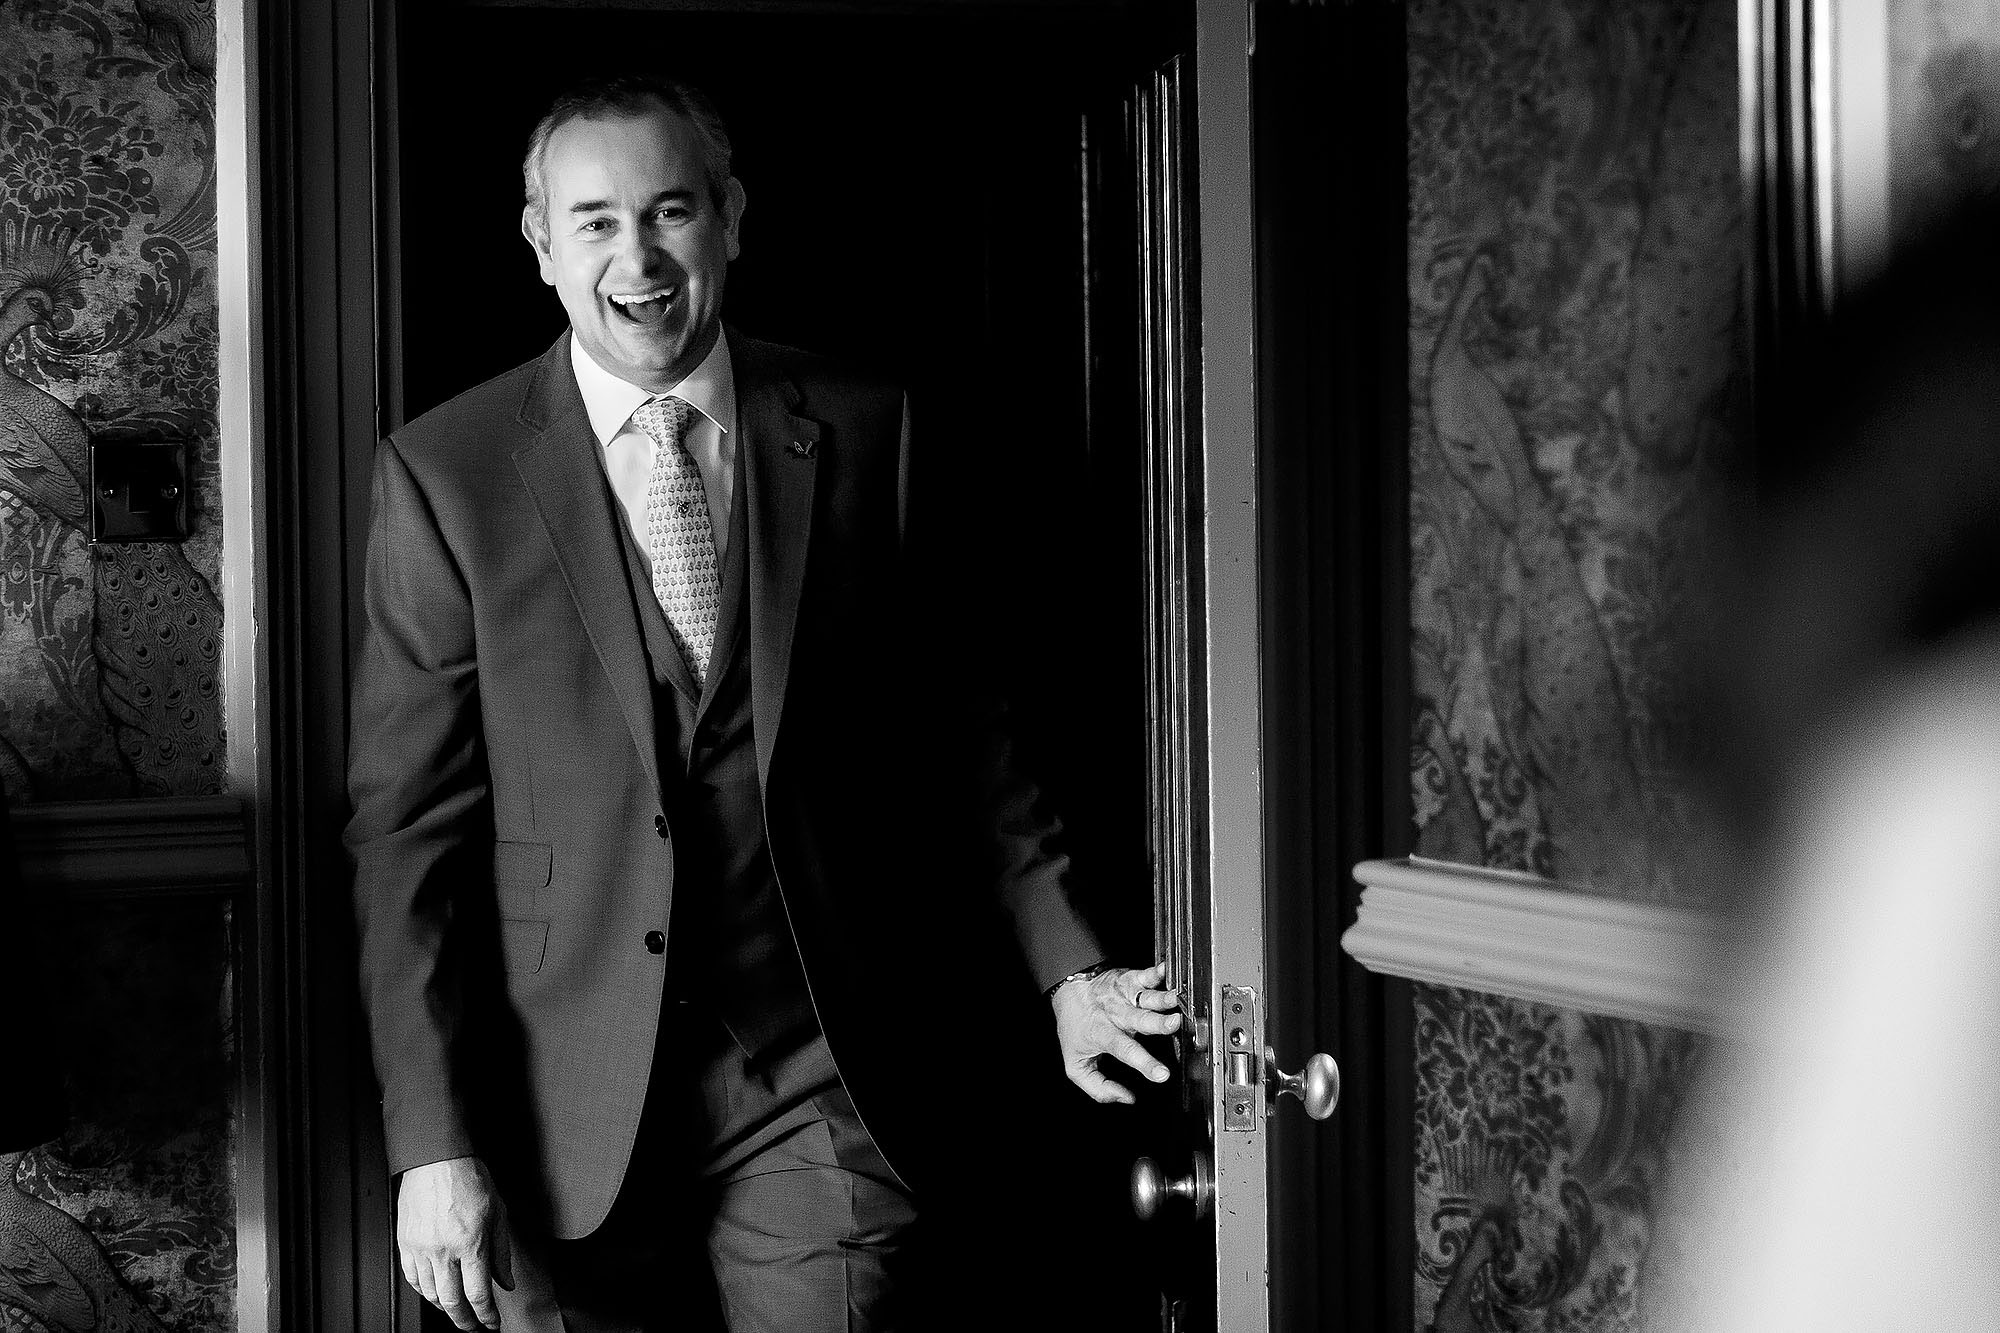 Dad entering the room to see his daughter in her wedding dress | Mitton Hall wedding photographs by Toni Darcy Photography